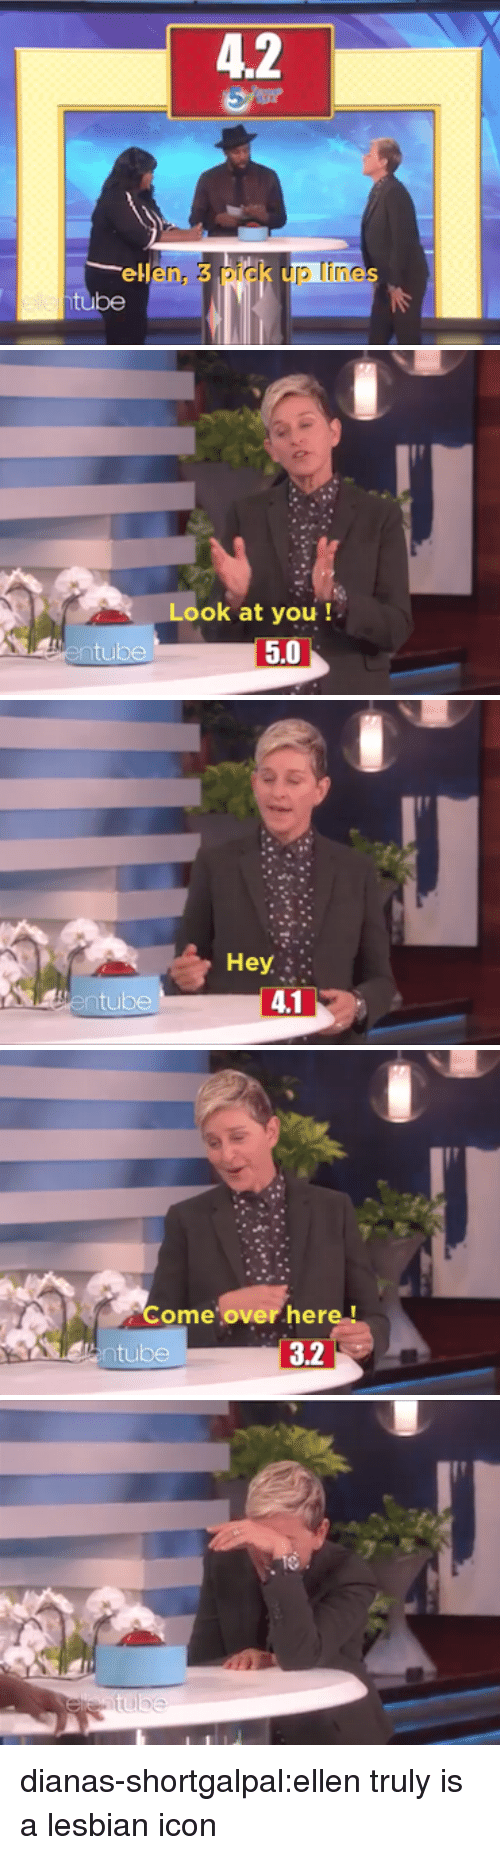 Come Over, Tumblr, and Blog: 4.2  ellen, 3 pick up lines  be   Look at you !  tu   Come over here!  tube  3.2 dianas-shortgalpal:ellentruly is a lesbian icon